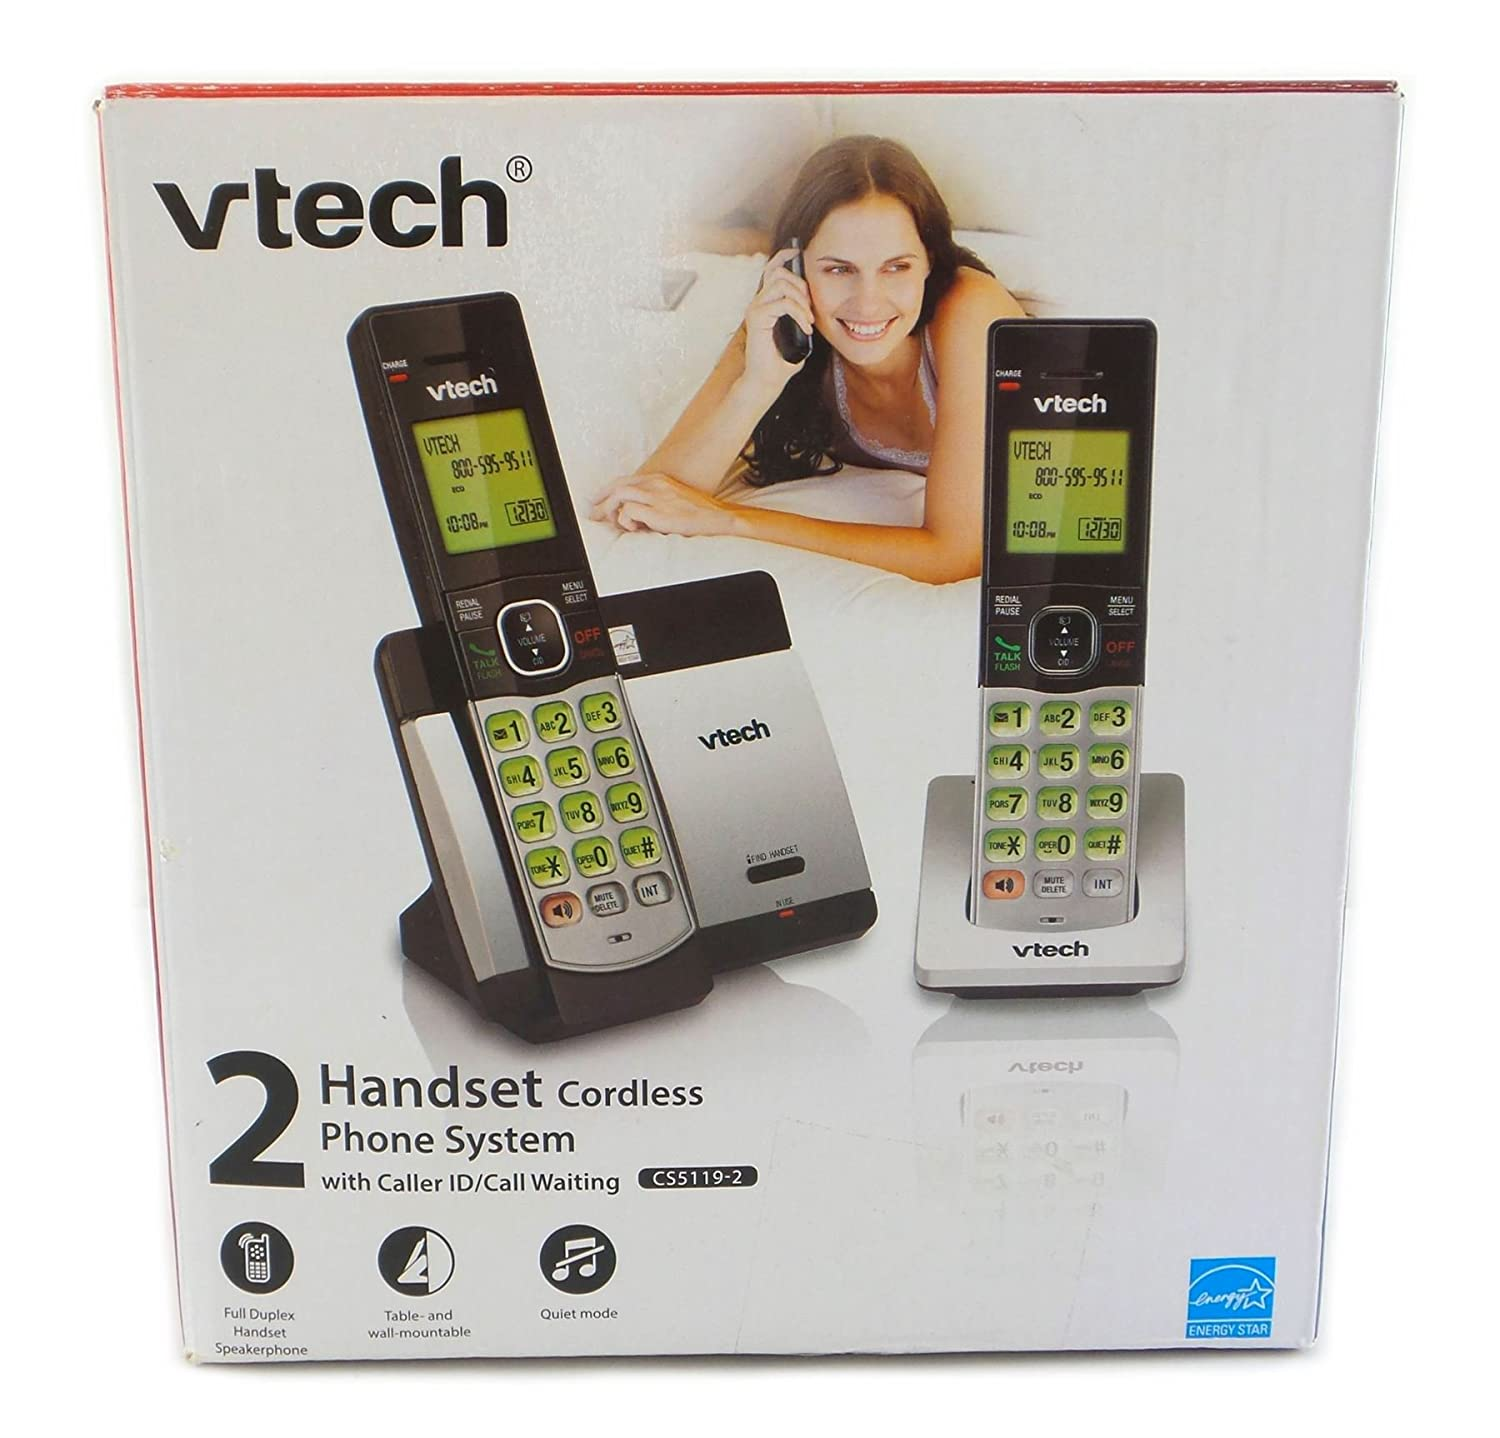 VTech 2 Handset Cordless Phone System with Caller ID and Call Waiting CS5119-2